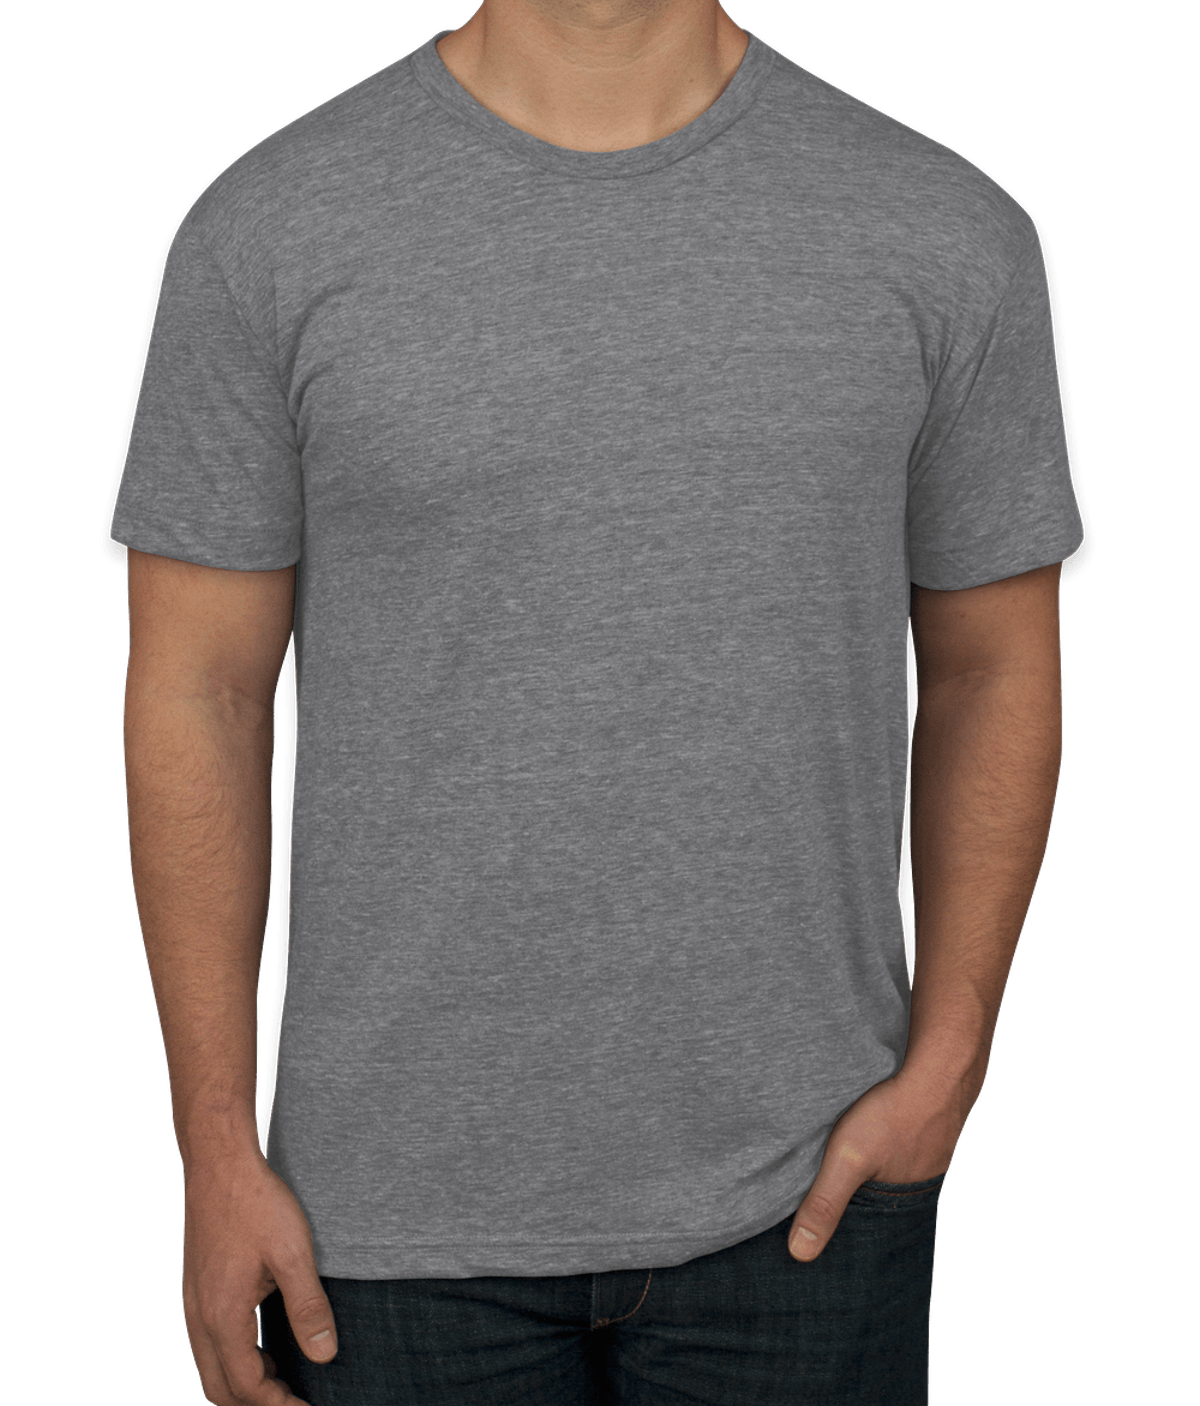 American Apparel USA-Made Tri-Blend Track T-shirt